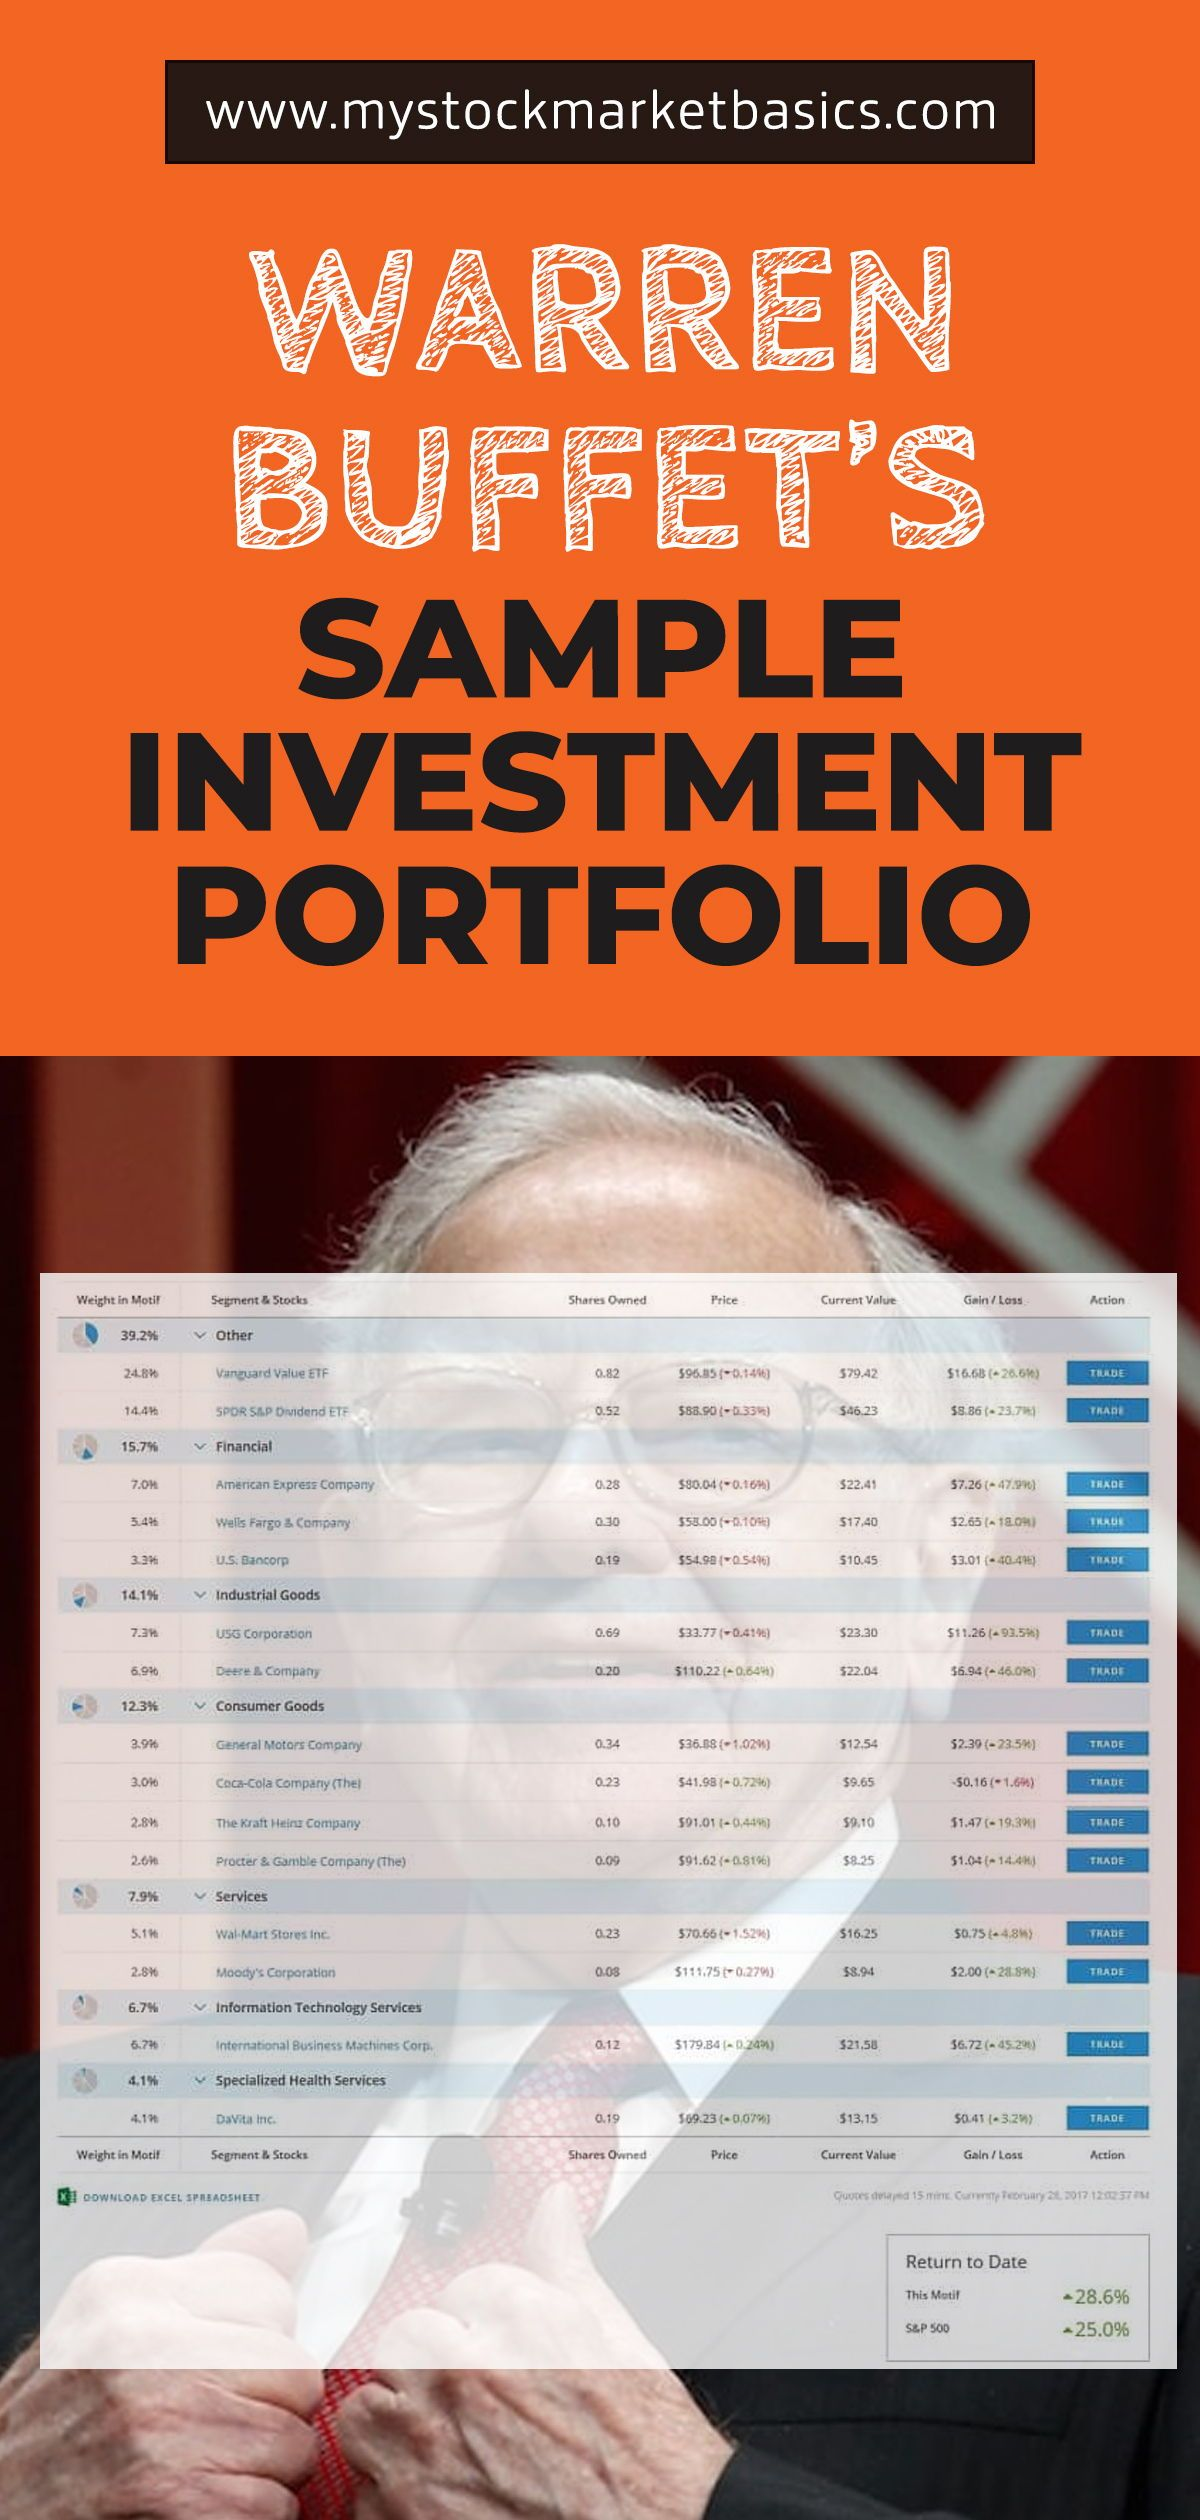 Four Of These Sample Investment Portfolios Beat The Stock Market